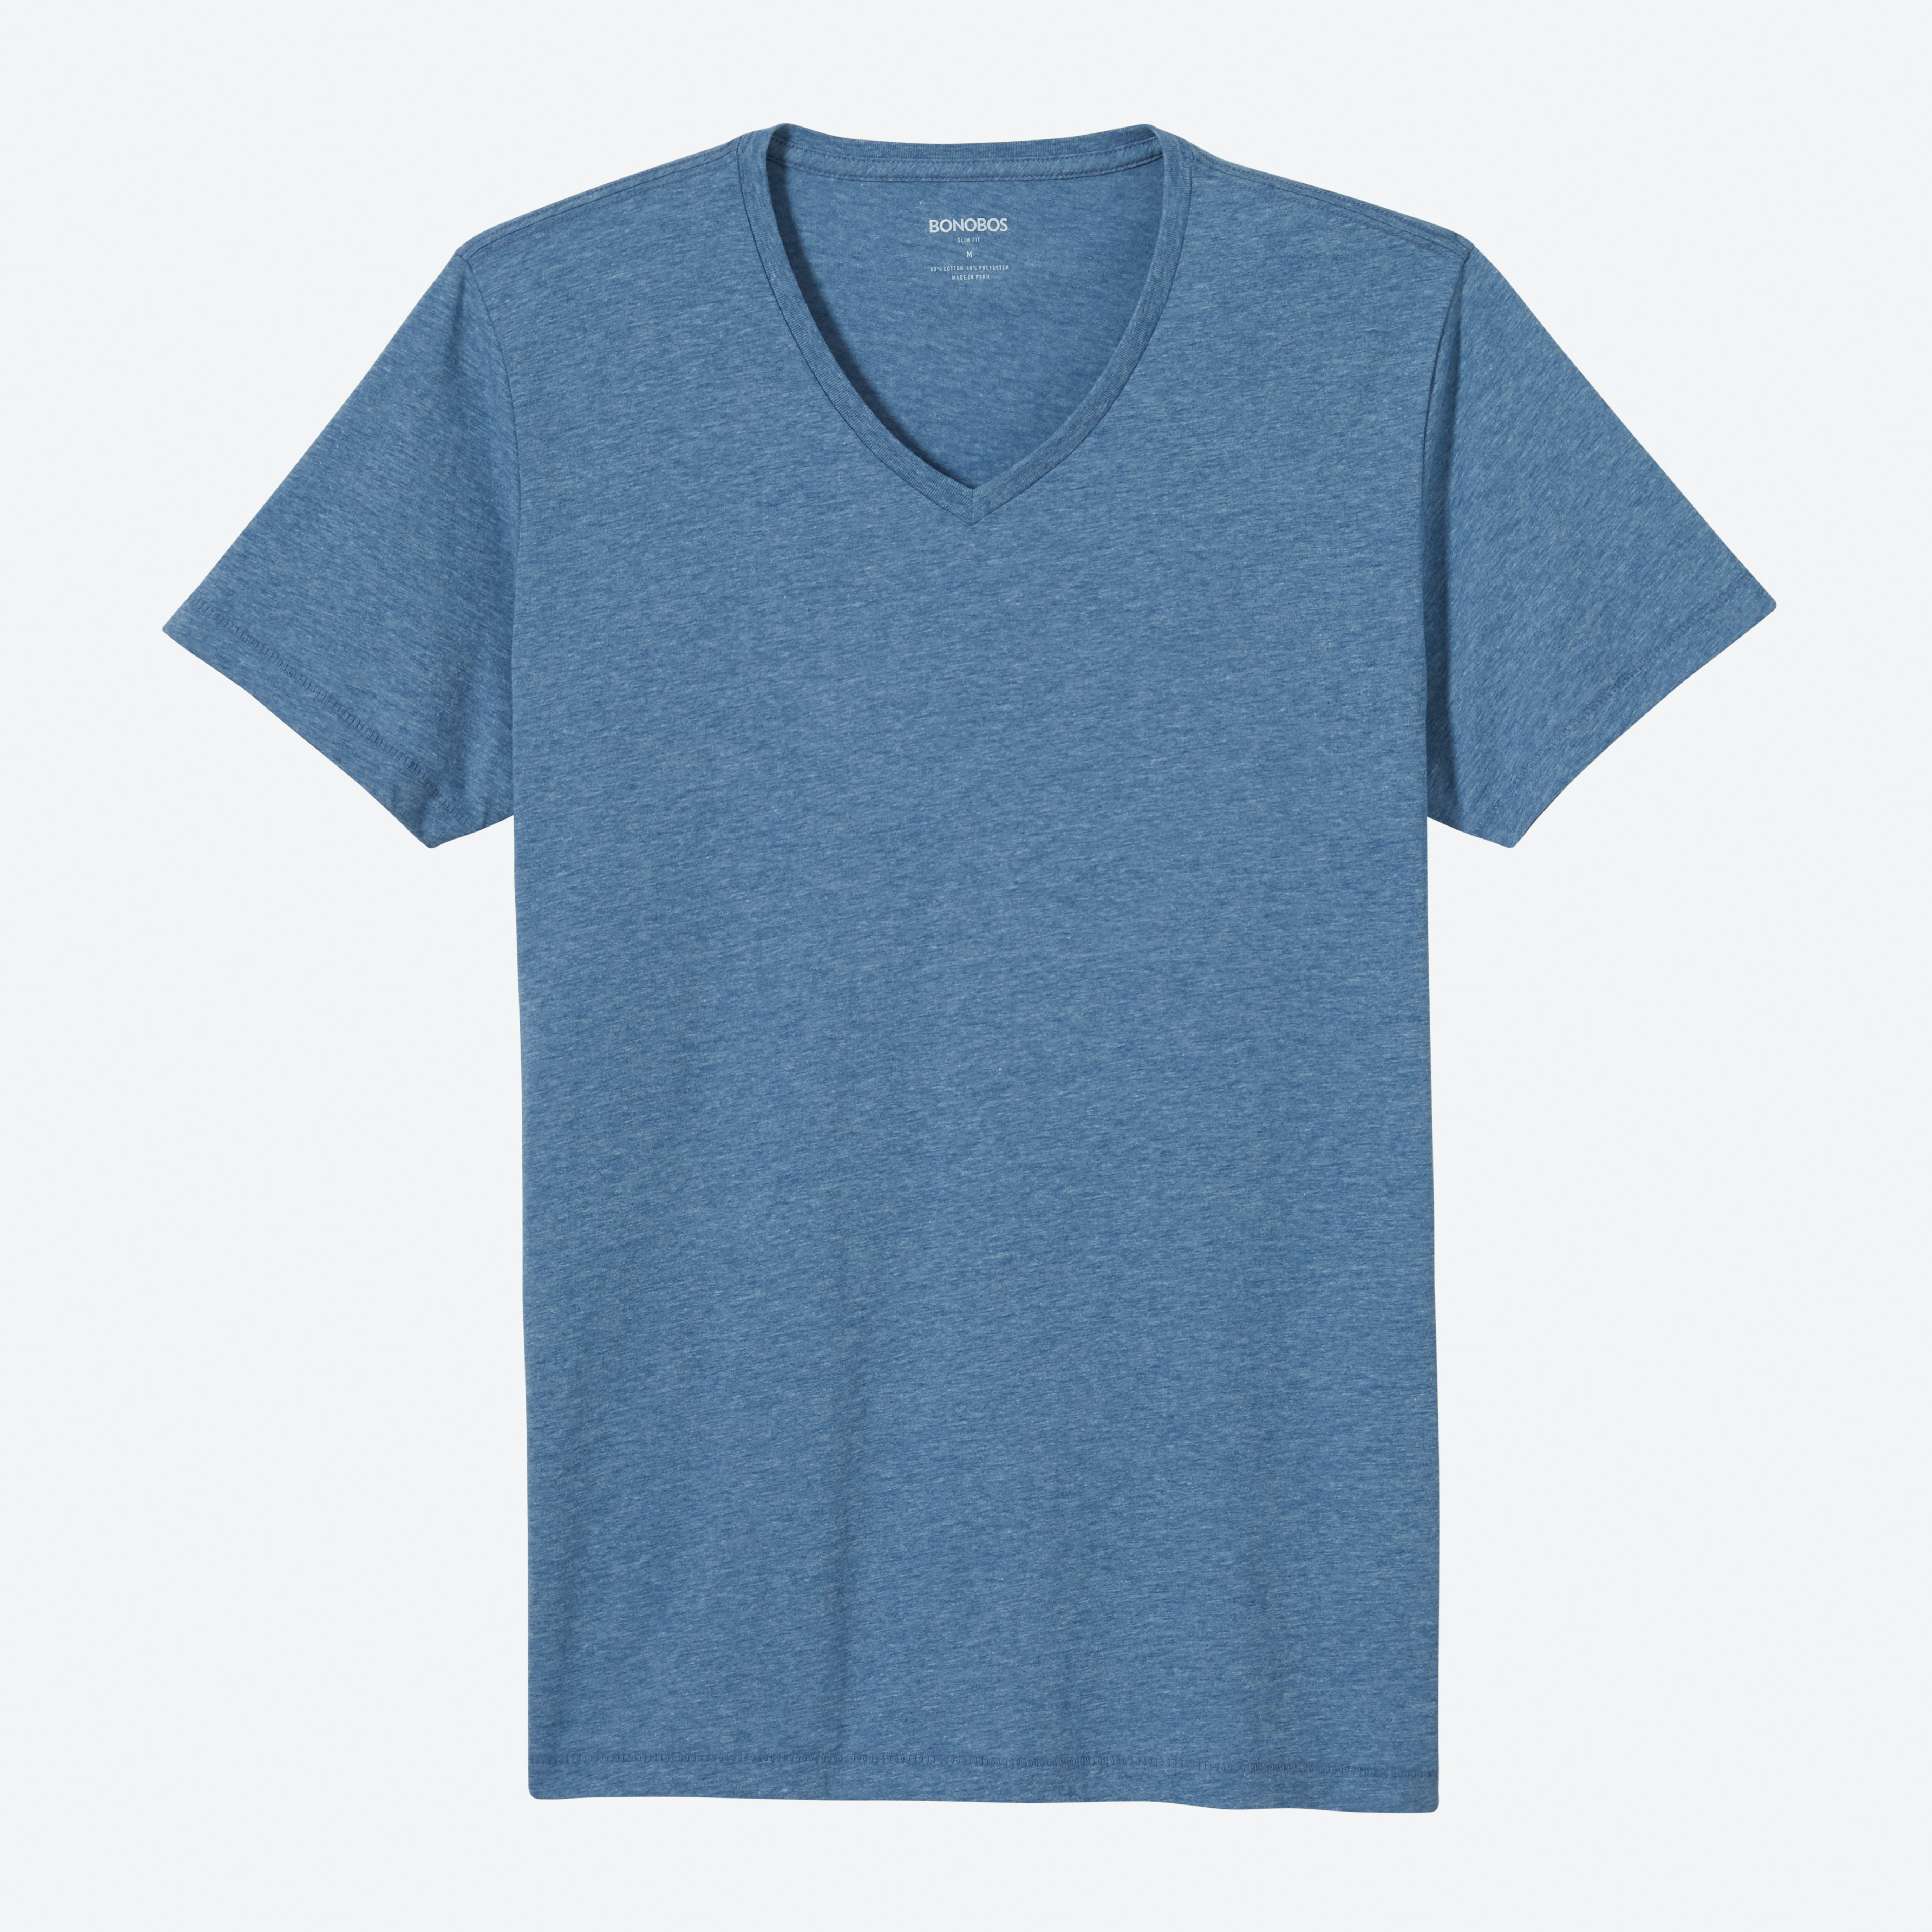 Yarn Spun V-Neck Tee